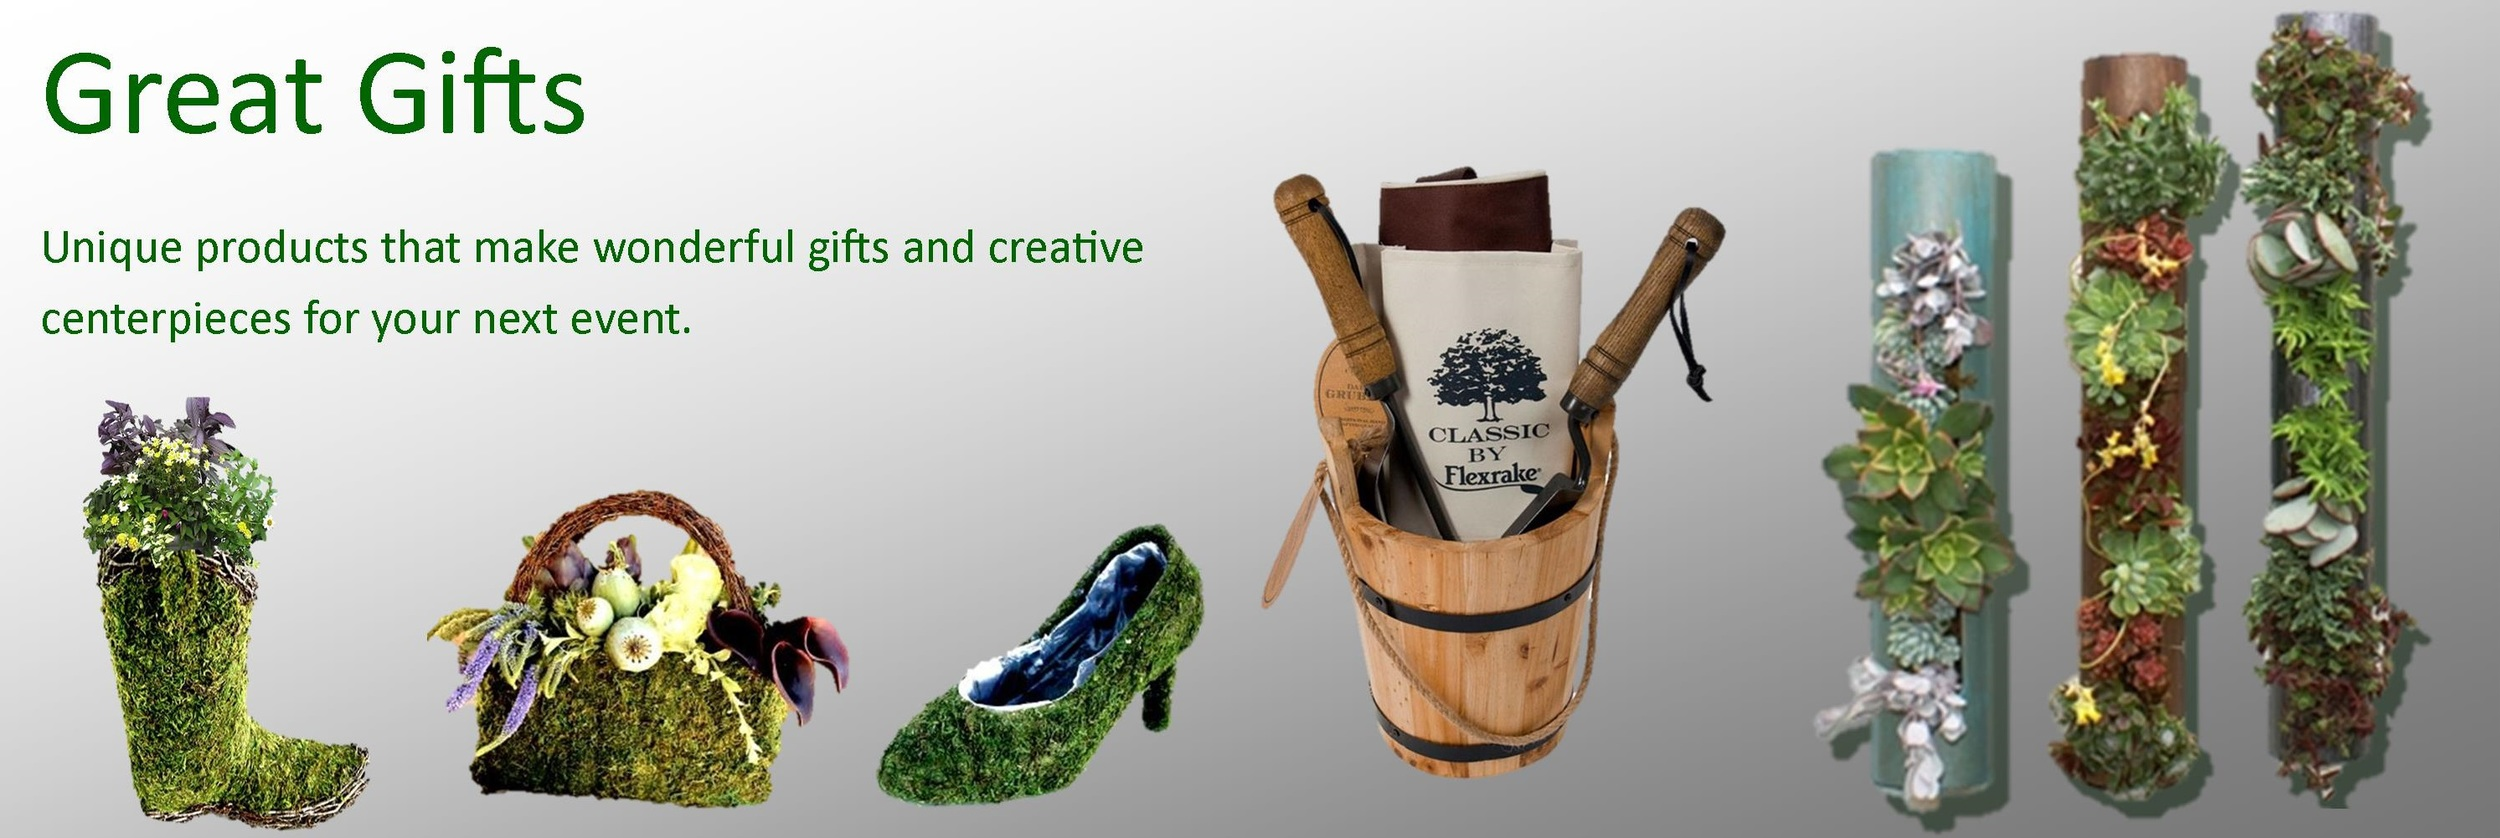 Great Gifts Ideas For Gardeners